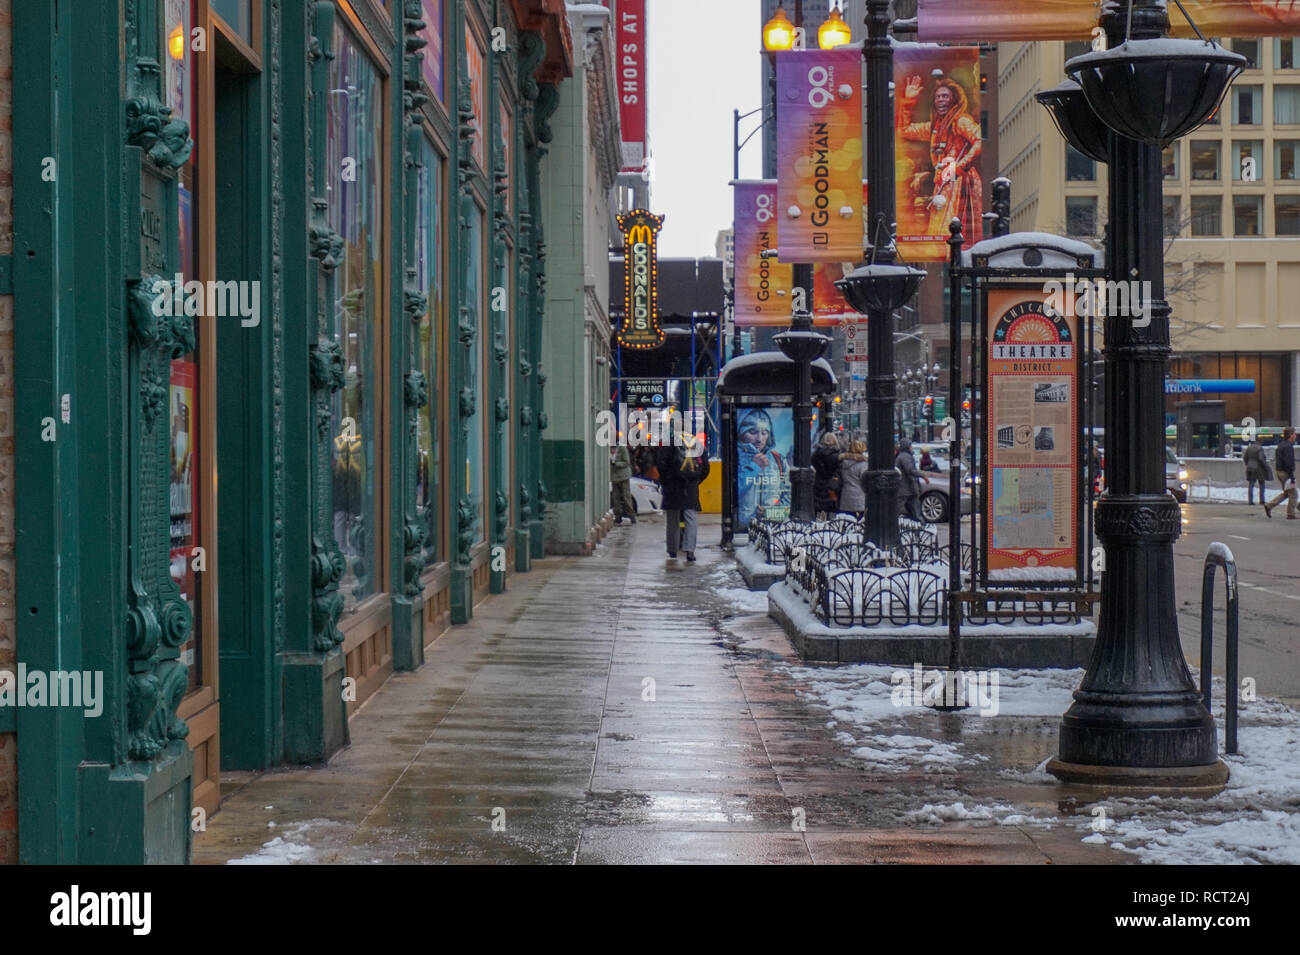 Chicago, IL, USA - 3/23/2015: Colorful Chicago sidewalk with street lamps and banner signs. Taken on a rainy day at dusk. The Windy City. - Stock Image